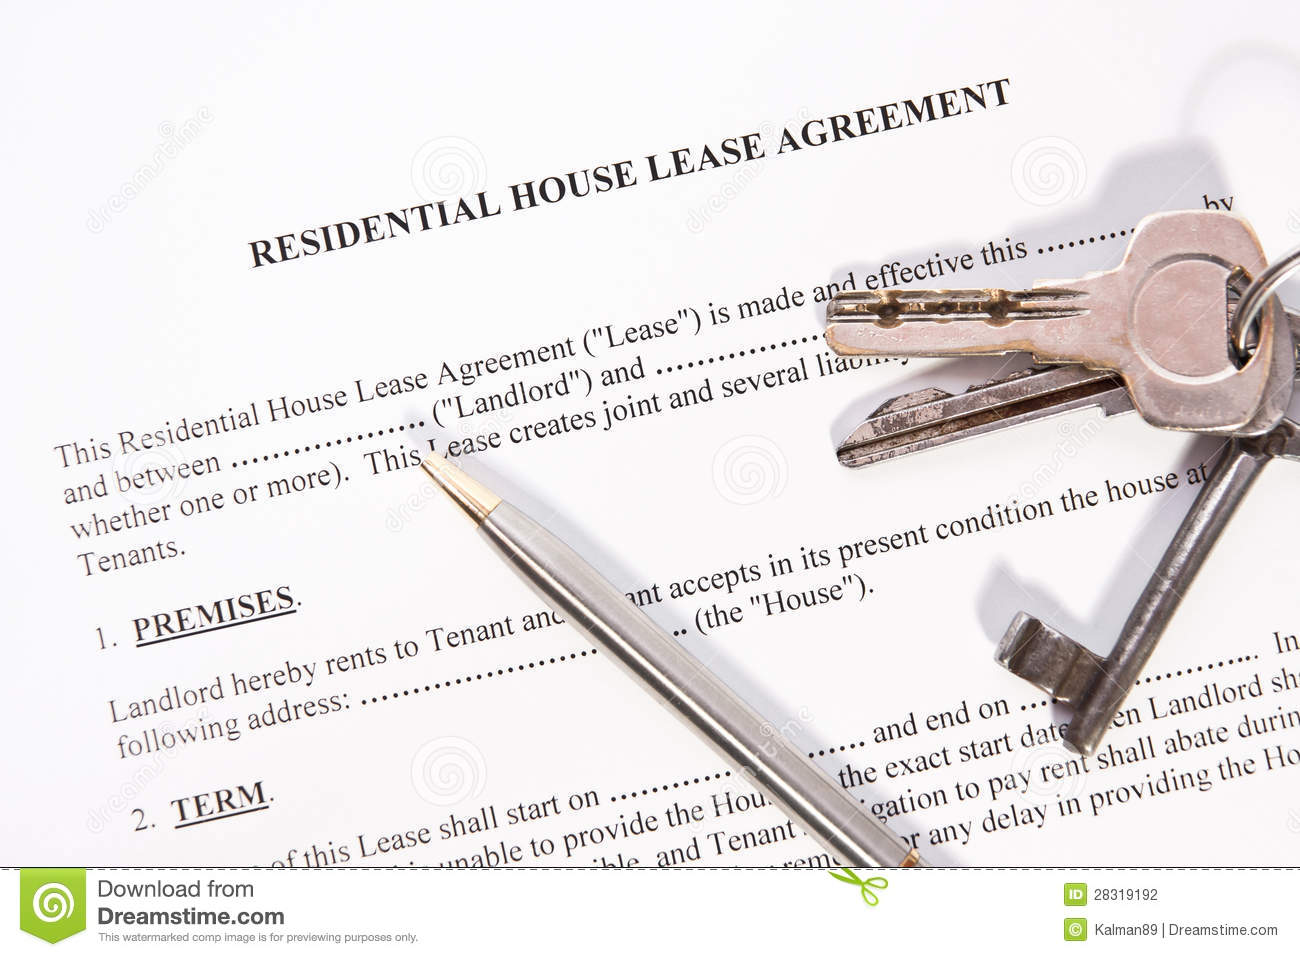 Thumbs Dreamstime Com Z Rental Lease Agreement 283